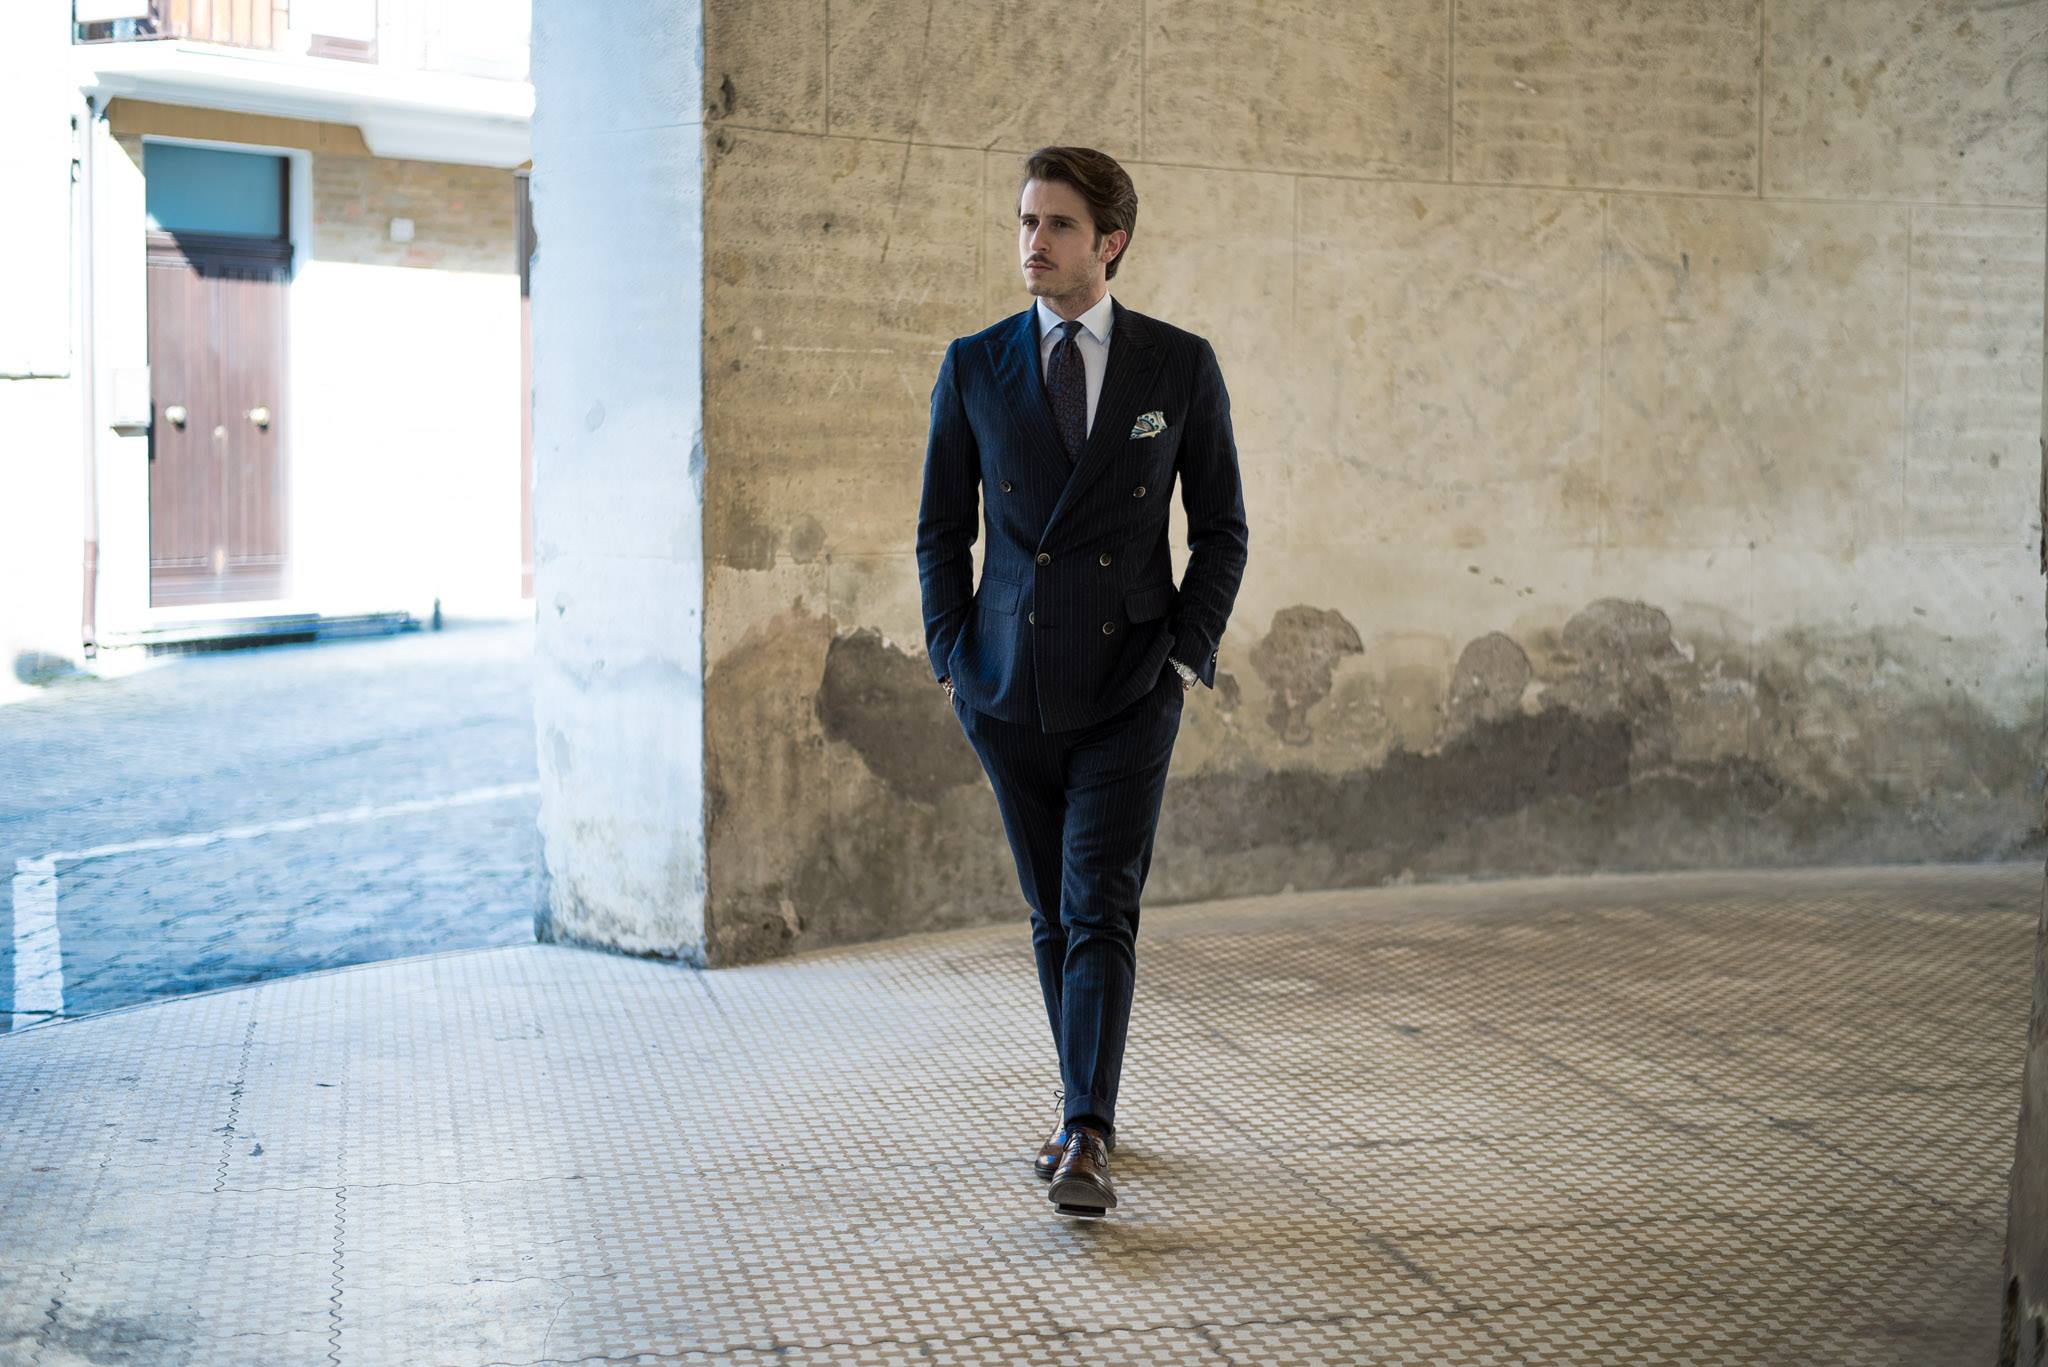 marcotaddei-marco-taddei-simplymrt-simply-mr-t-simply-mrt-fashion-blogger-uomo-fashionblogger-menswear-gentleman-outfit-instagram-suits